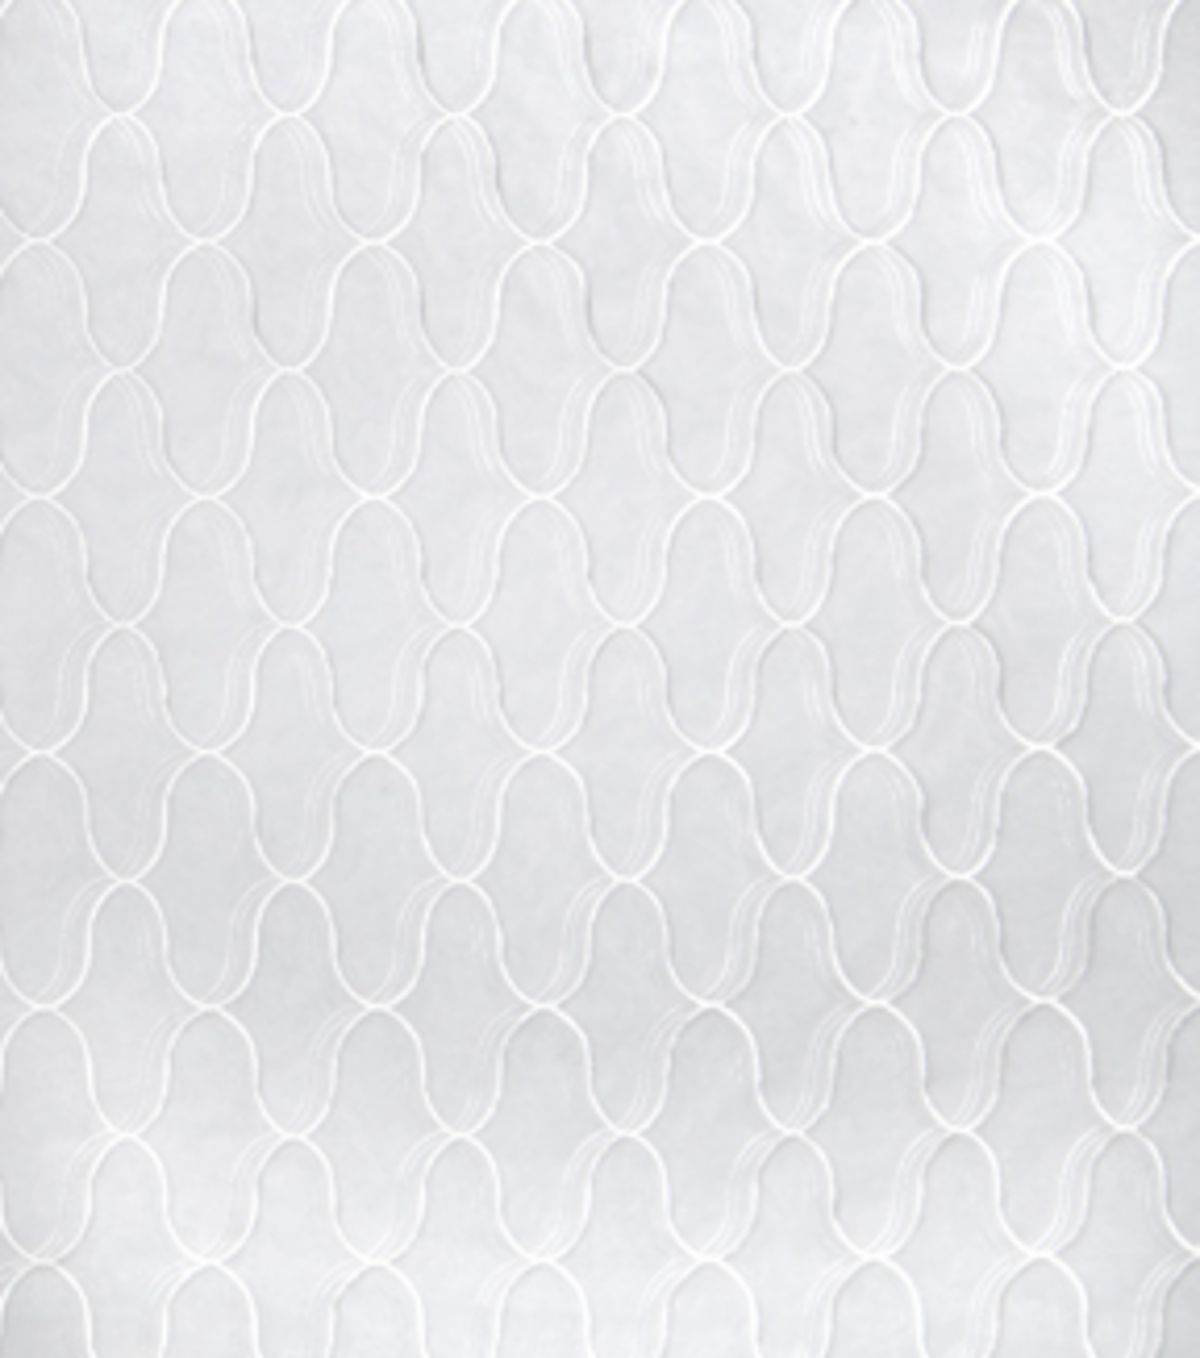 Home Decor 8\u0022x8\u0022 Fabric Swatch-Eaton Square Diego   Champagne